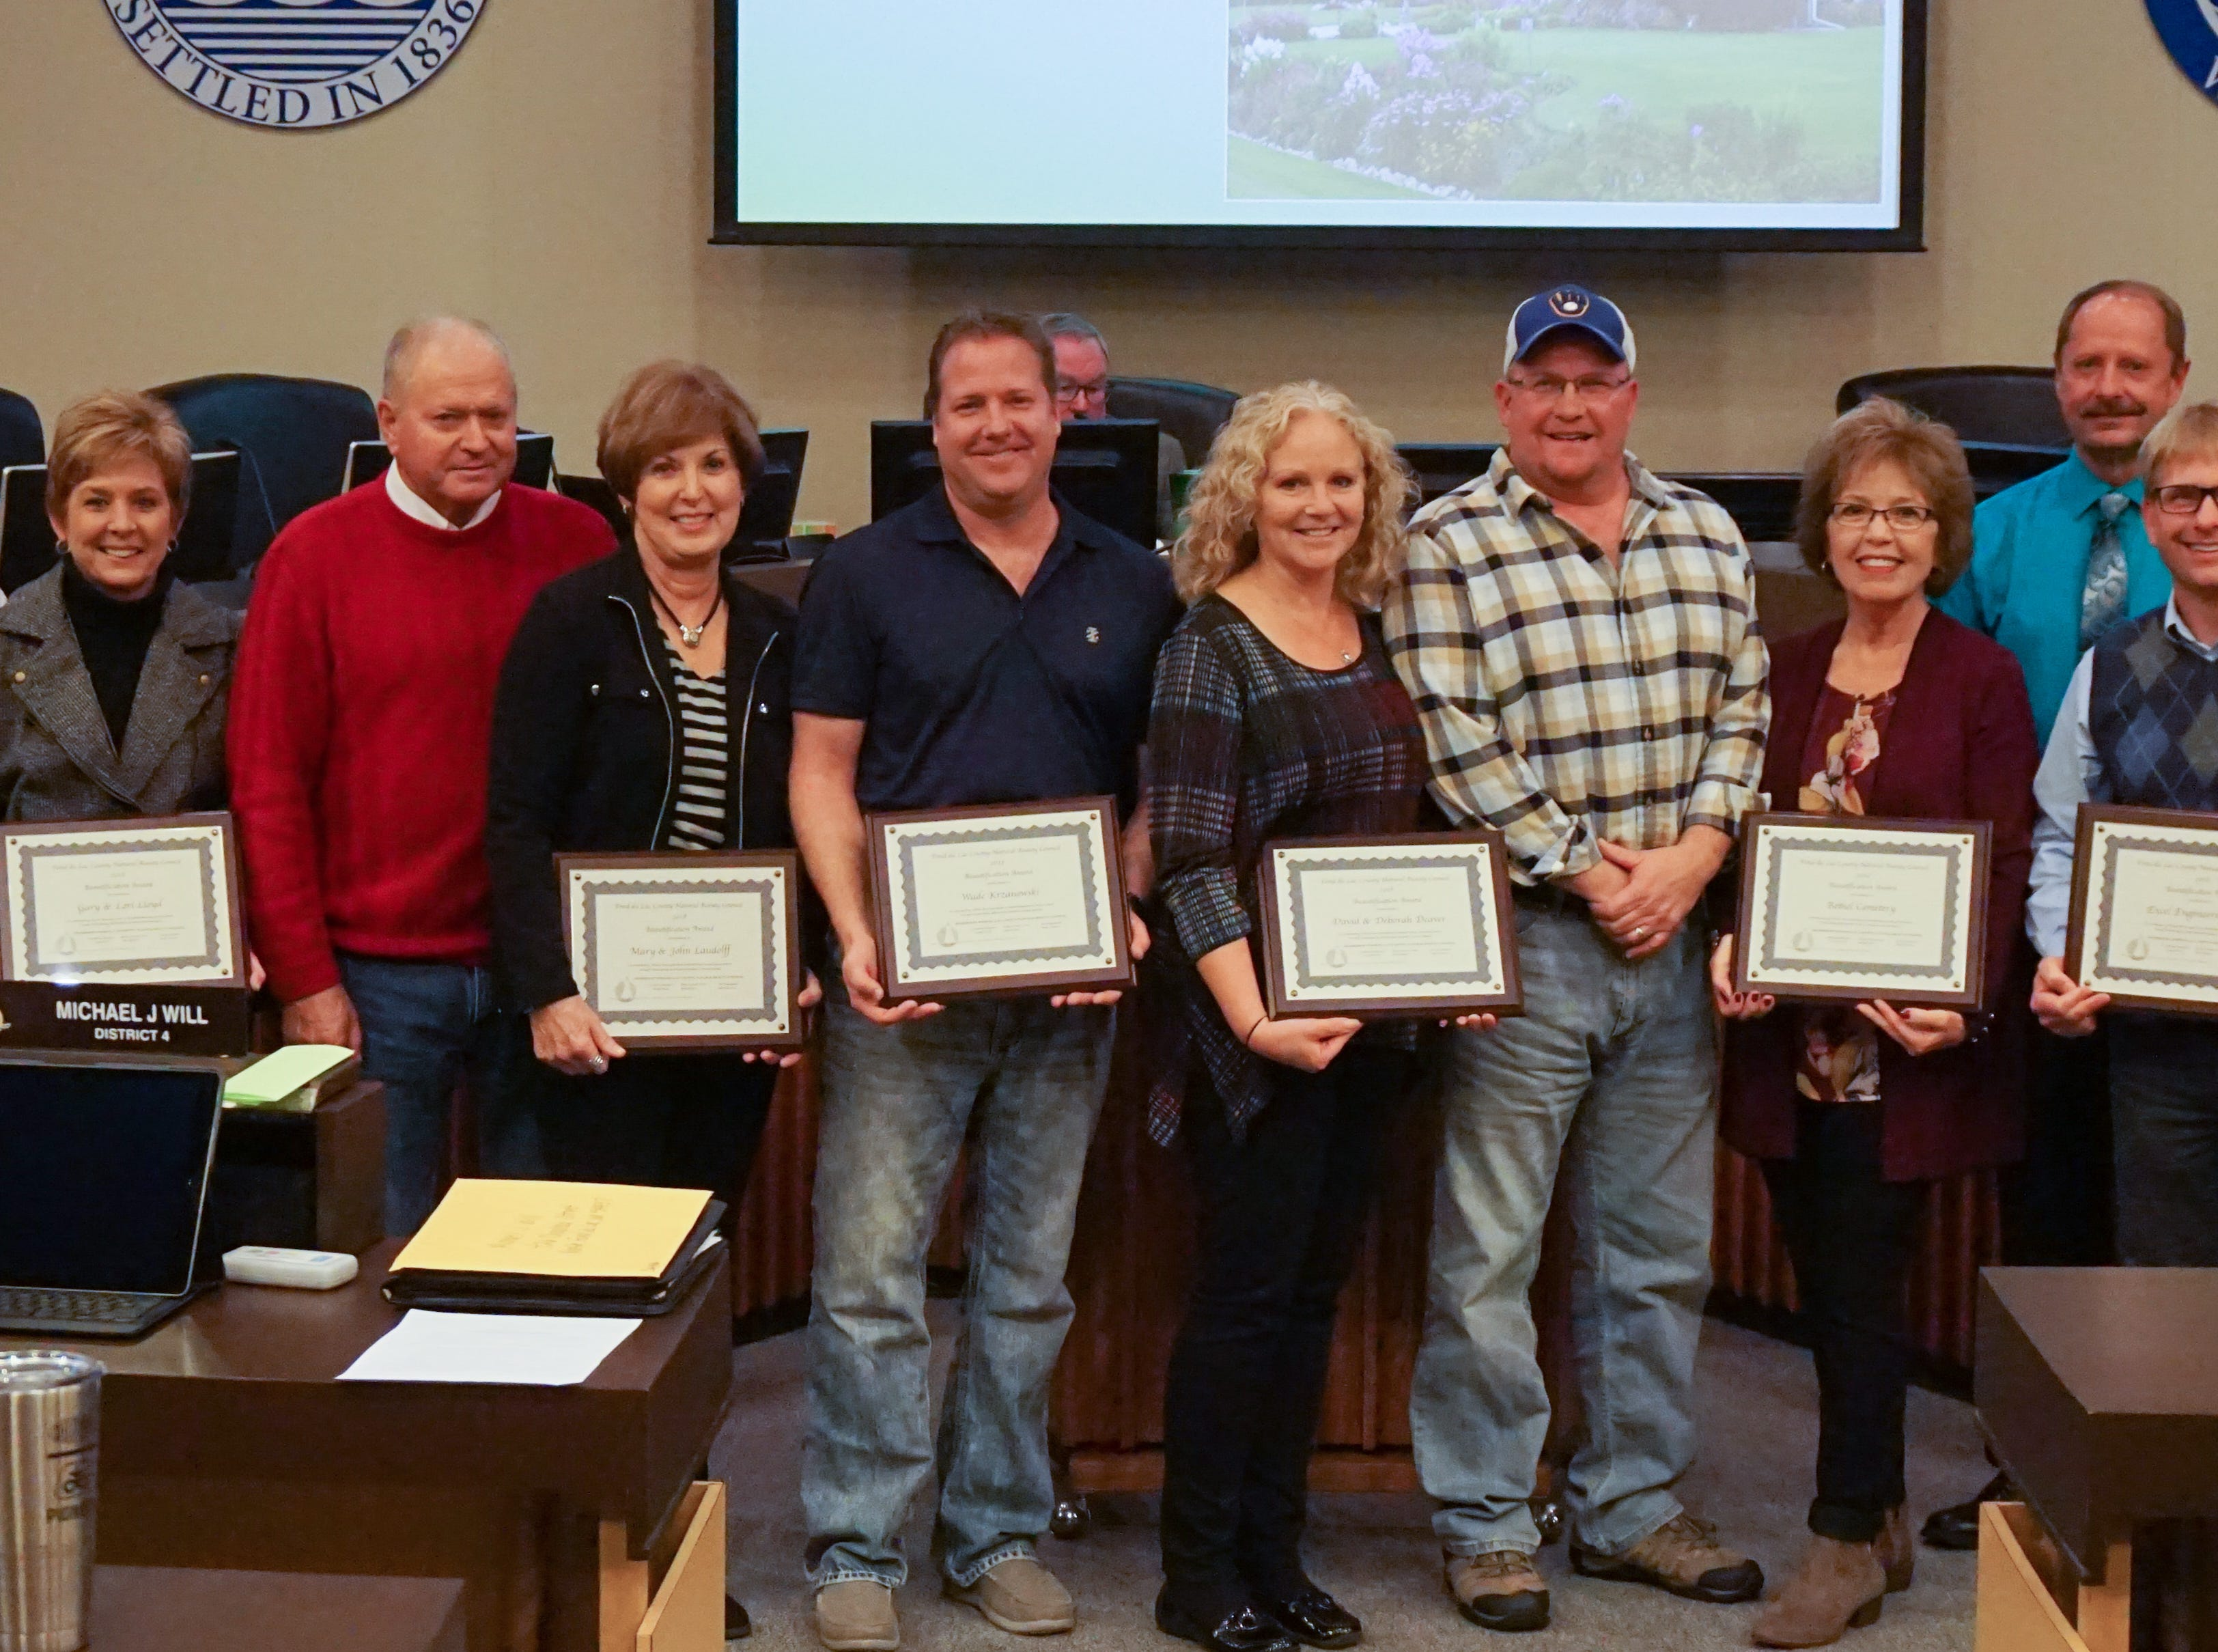 Pictured, from left, Brian Kolstad, chairperson, Natural Beauty Council; Gary and Lori Lloyd; John and Mary Laudolff; Wade Krzanowski; Deborah and David Deaver; Jackie Hansen of Bethel Cemetery; John Rickert, vice chairperson, Natural Beauty Council; Jeff Quast, president, Excel Engineering.